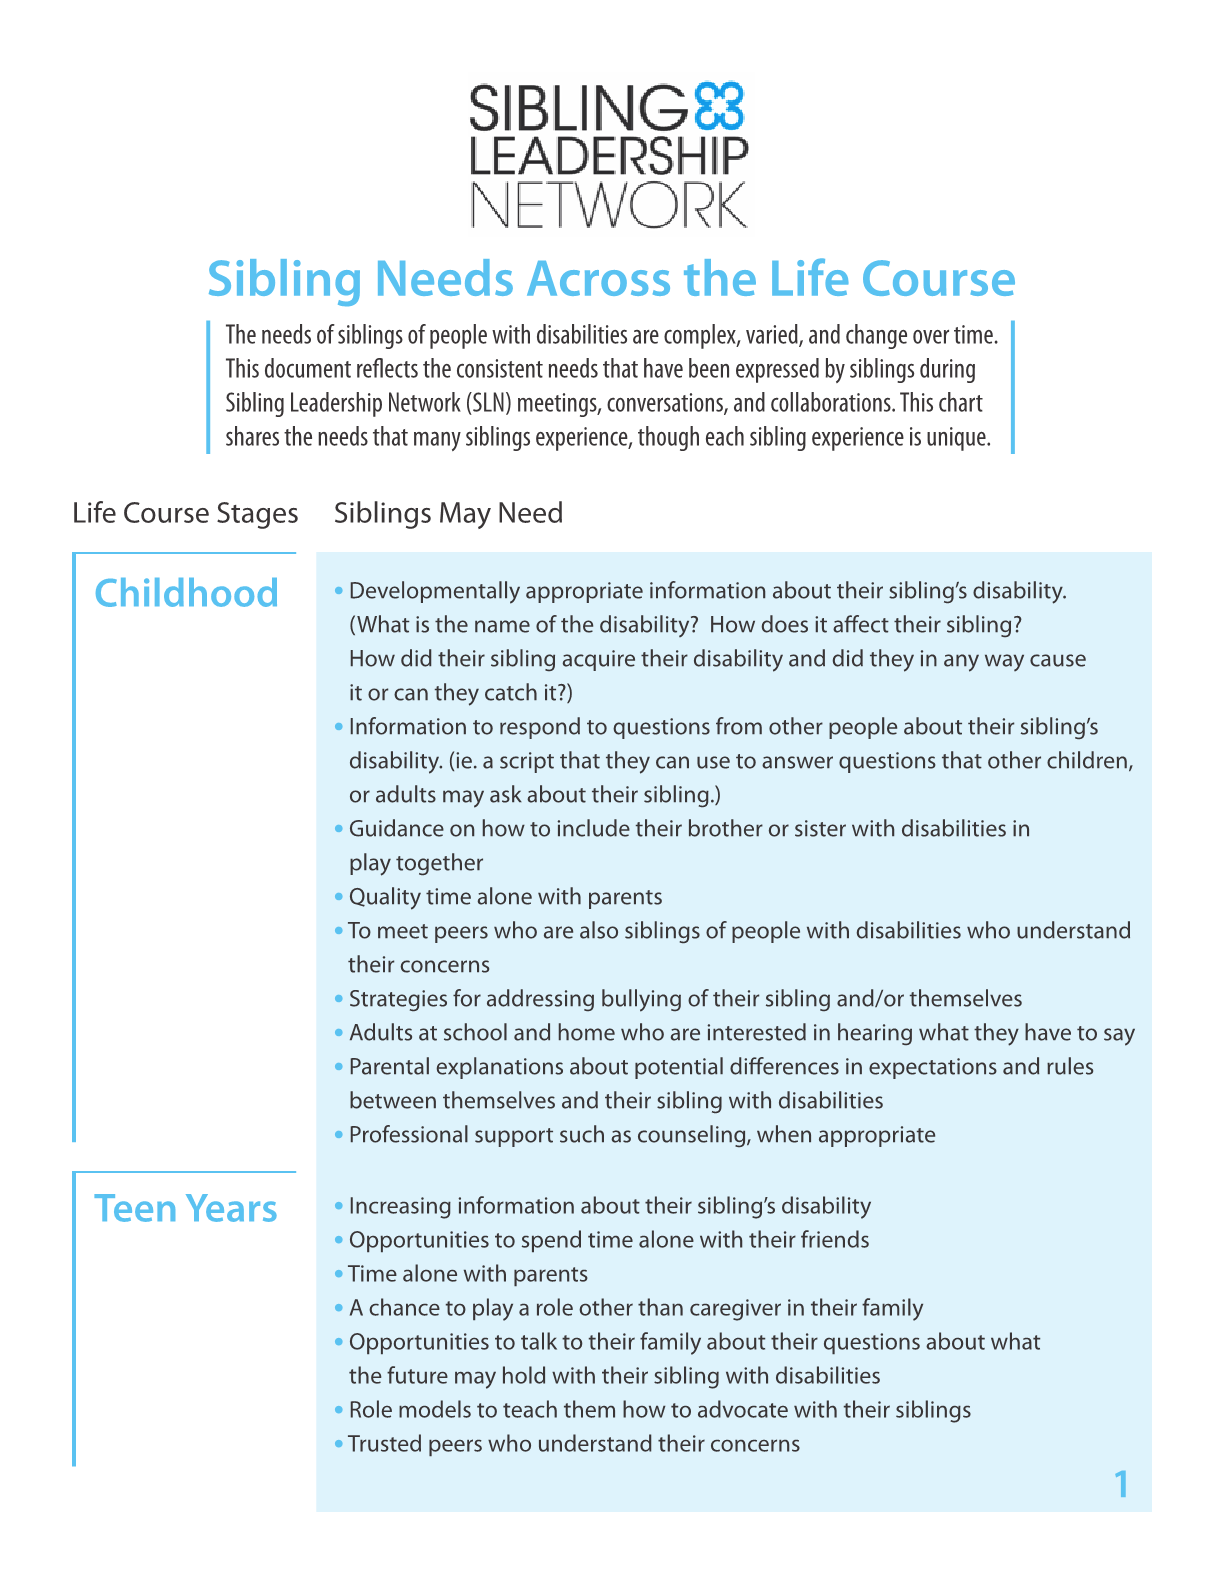 Siblings Needs Across the Life Course